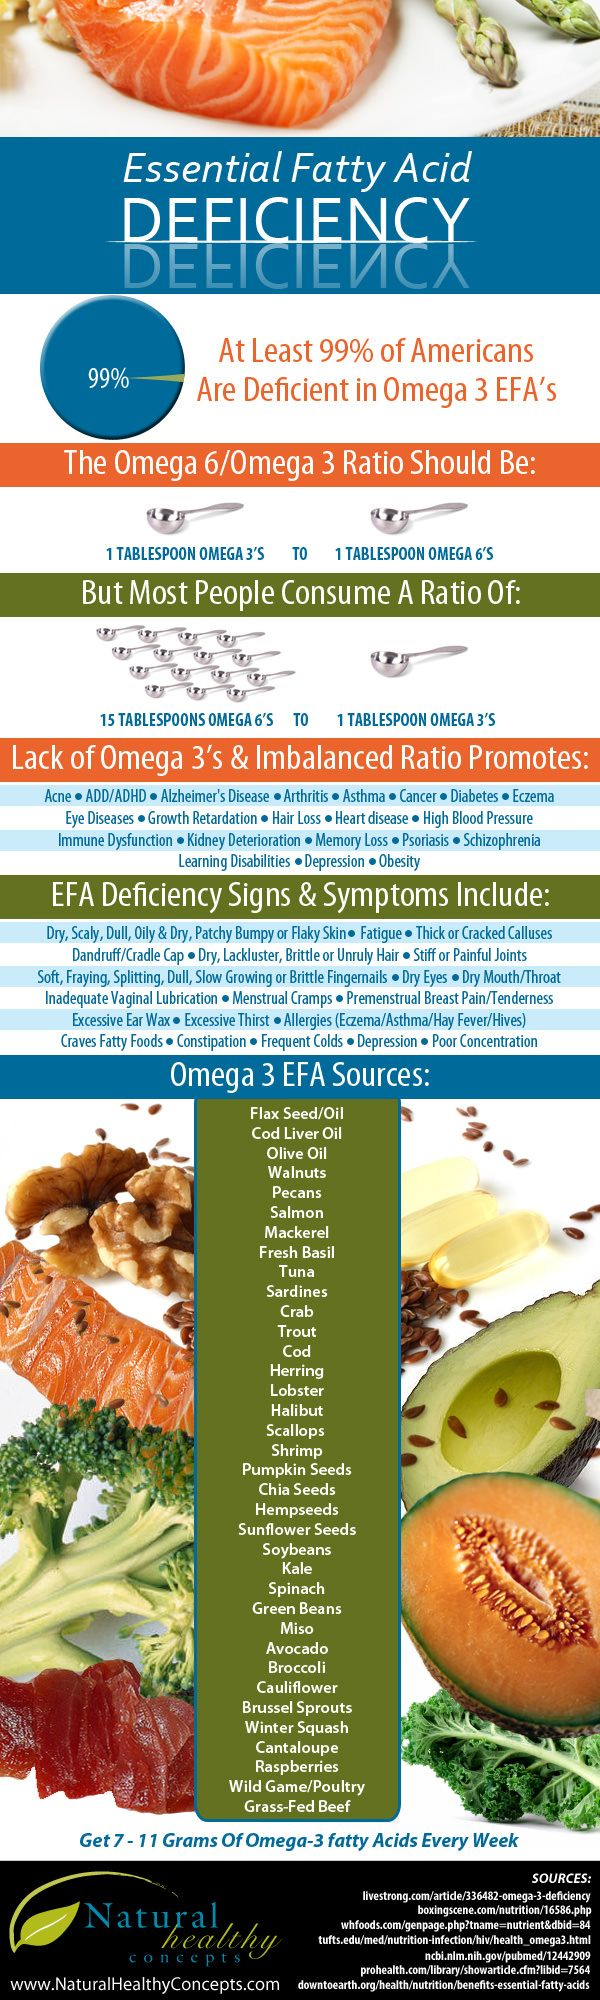 The reason so many people are deficient in Omega-3 fatty acids, as noted here, is because the average diet in the U.S. has far too much Omega-6 fats which are found in processed and fast foods.   It's all about having a good balance in your daily diet.   www.NutritionLifeStrategies.com